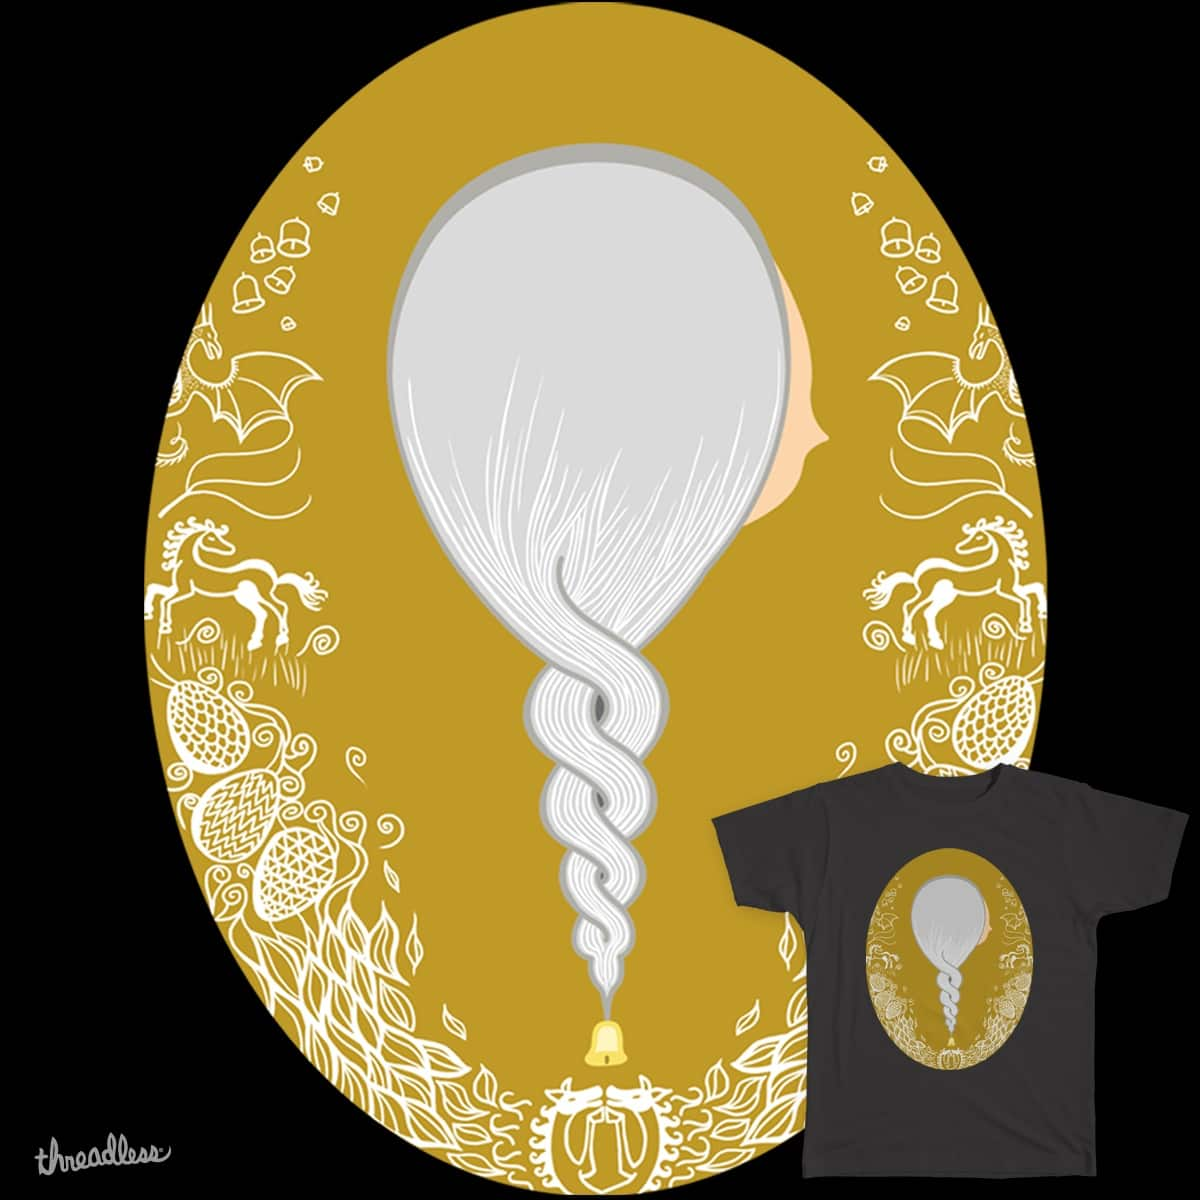 Mother of Dragons by MartaM on Threadless